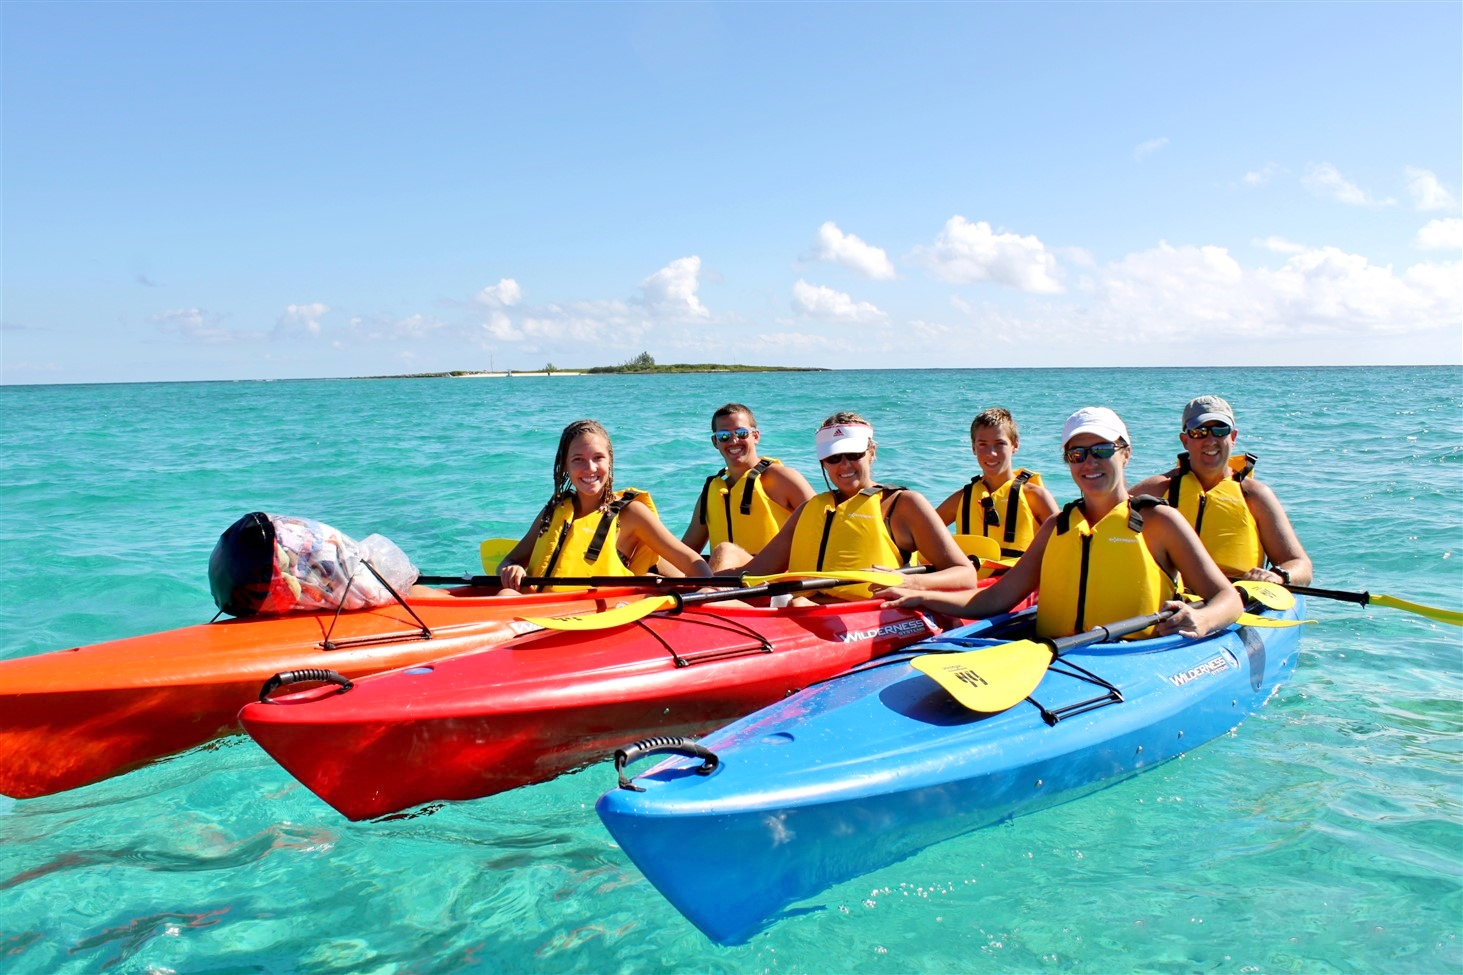 St. Thomas Excursions - Shore Activities & Cruise ...